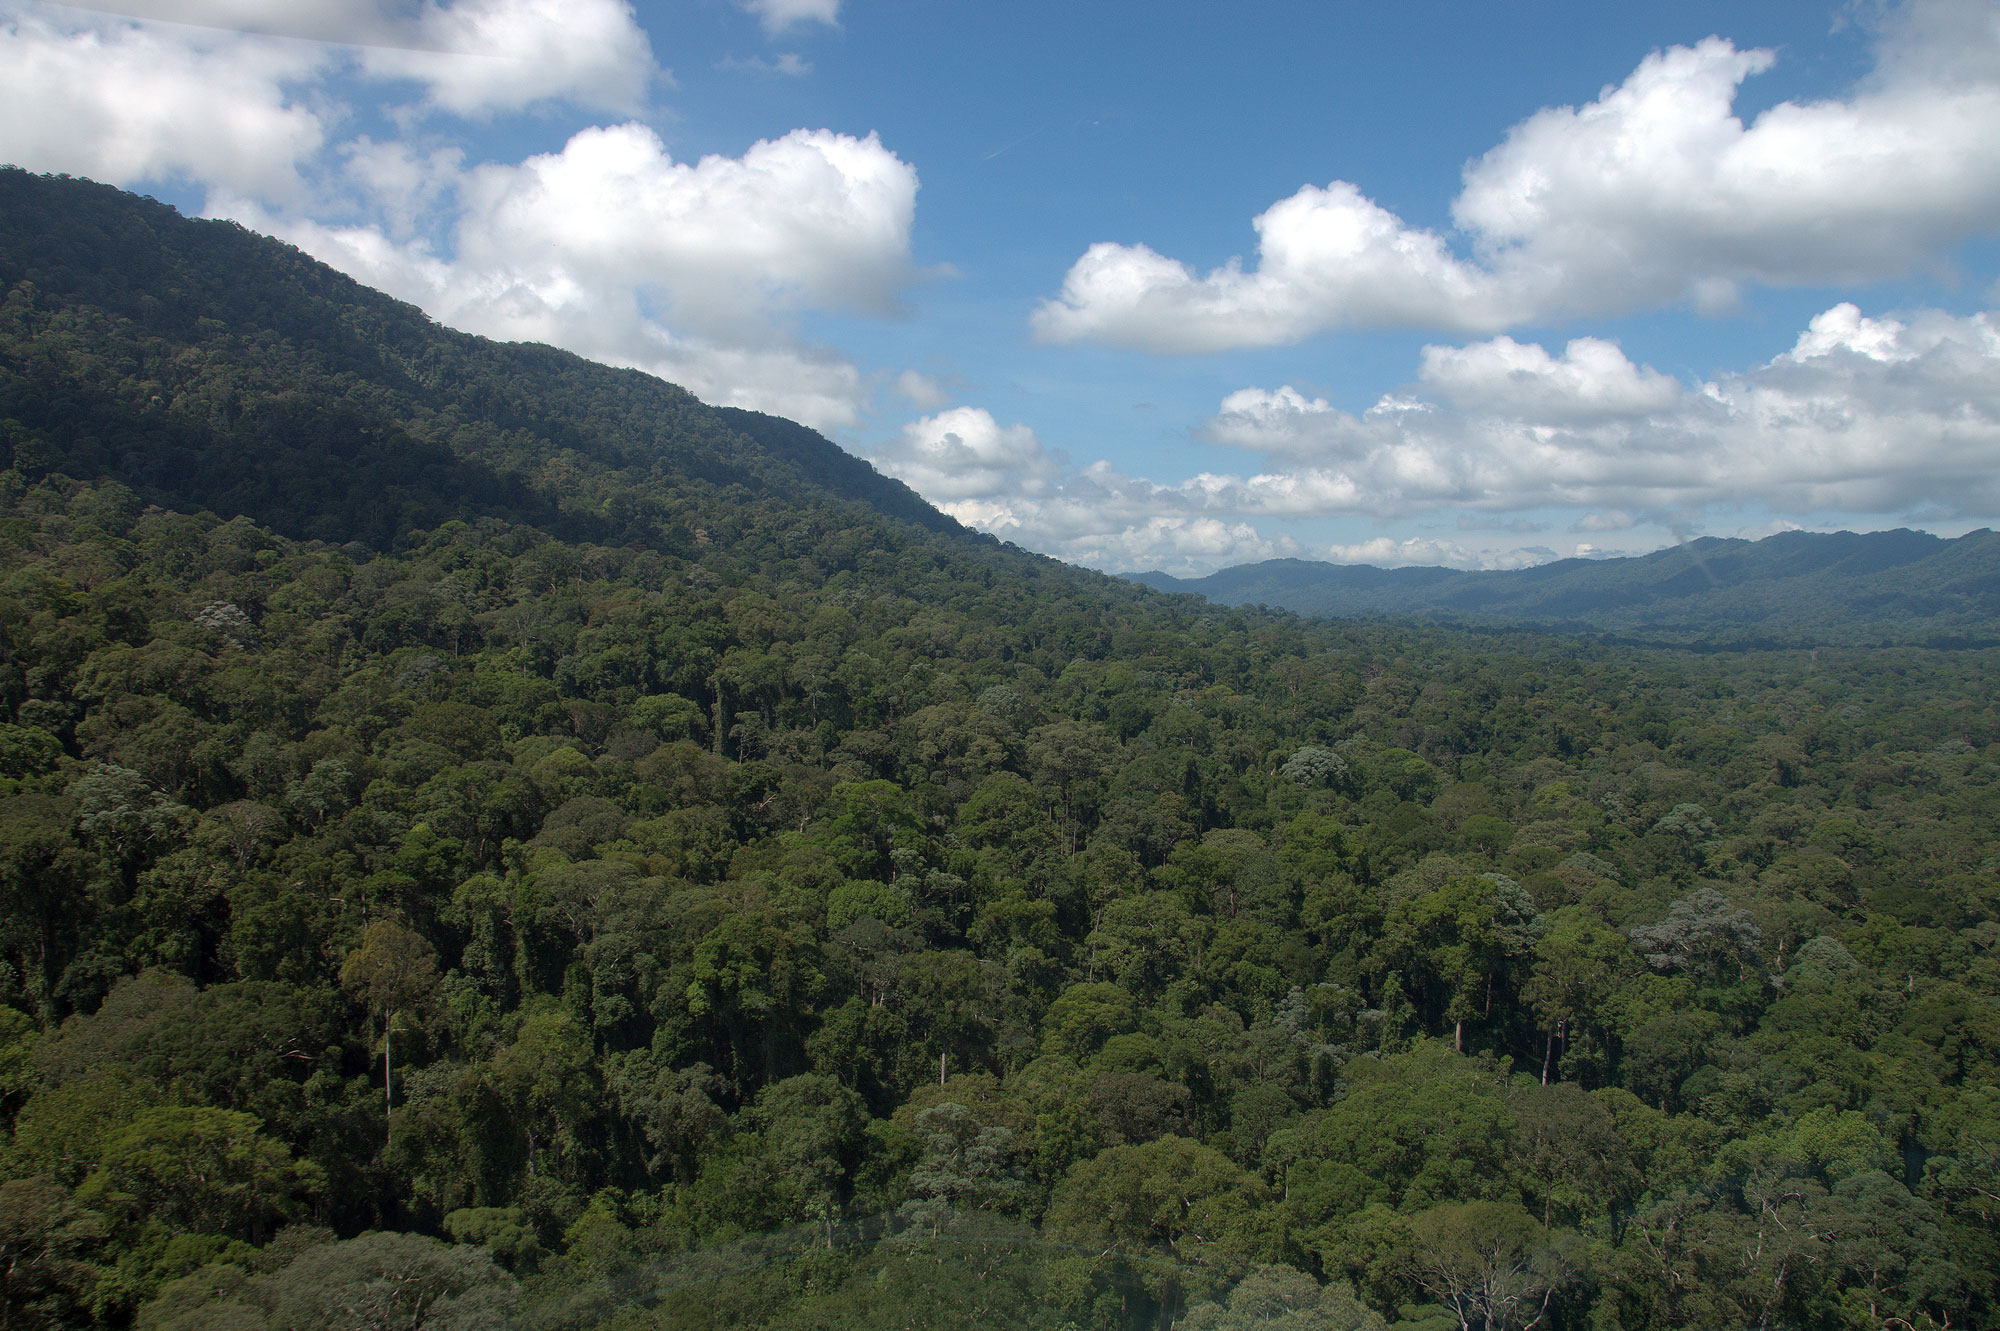 Supporting the Creation of a New Rainforest Protected Area in Malaysian Borneo